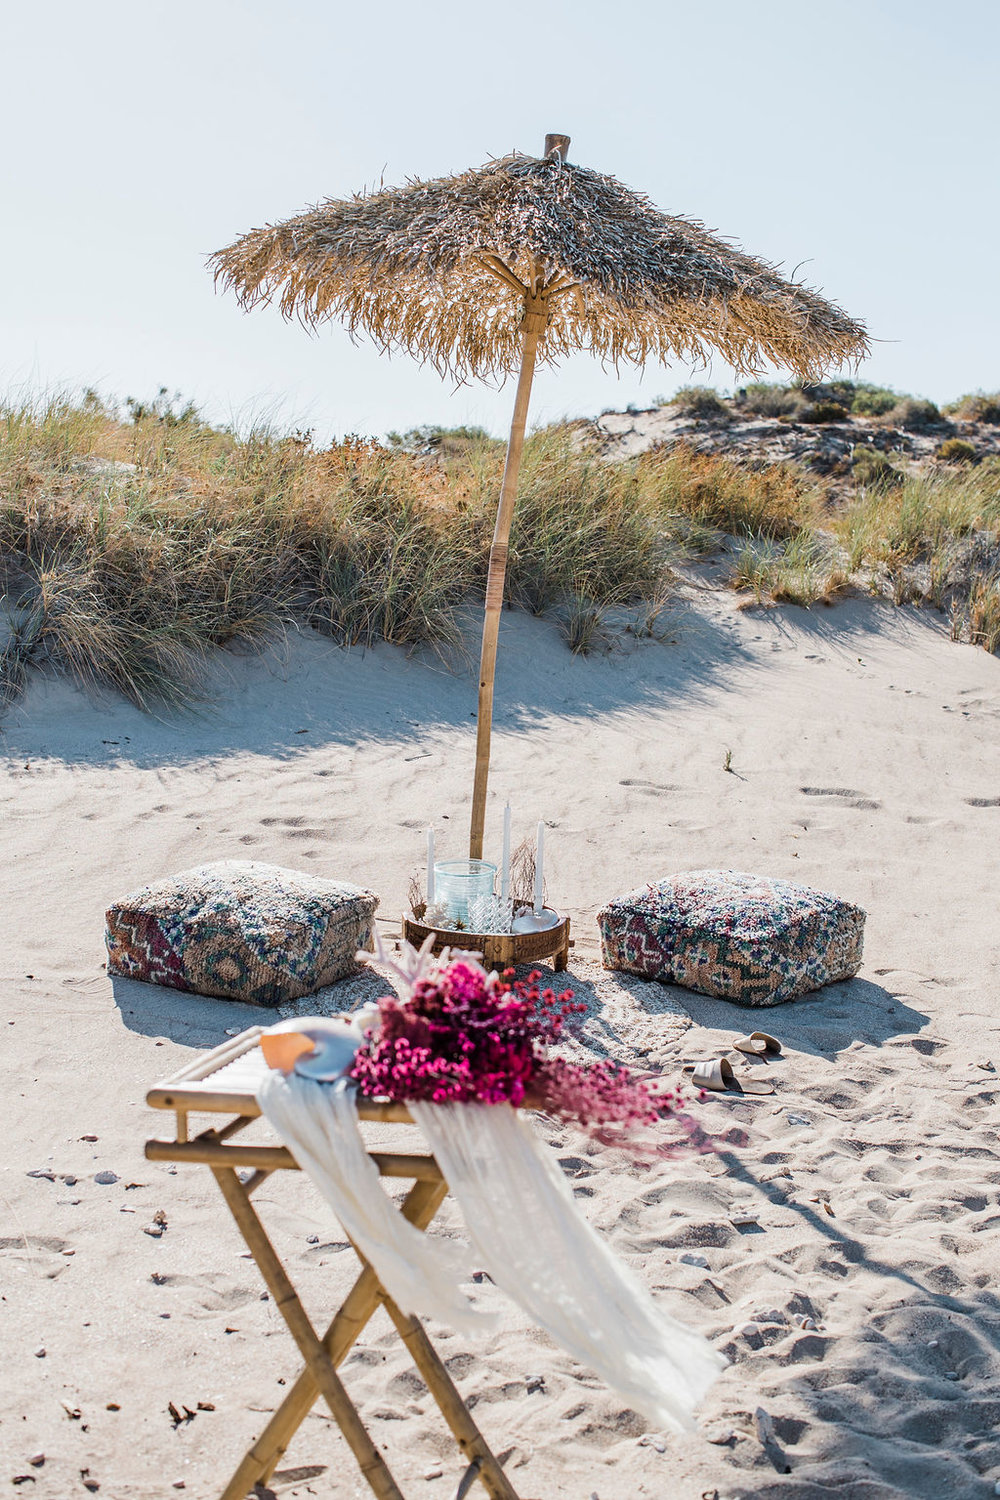 saltandsandeventhire-wedding-stylist-ningaloo-exmouth-waJ&P-Elope-to-ningaloo-exmouth-weddings-5.jpg